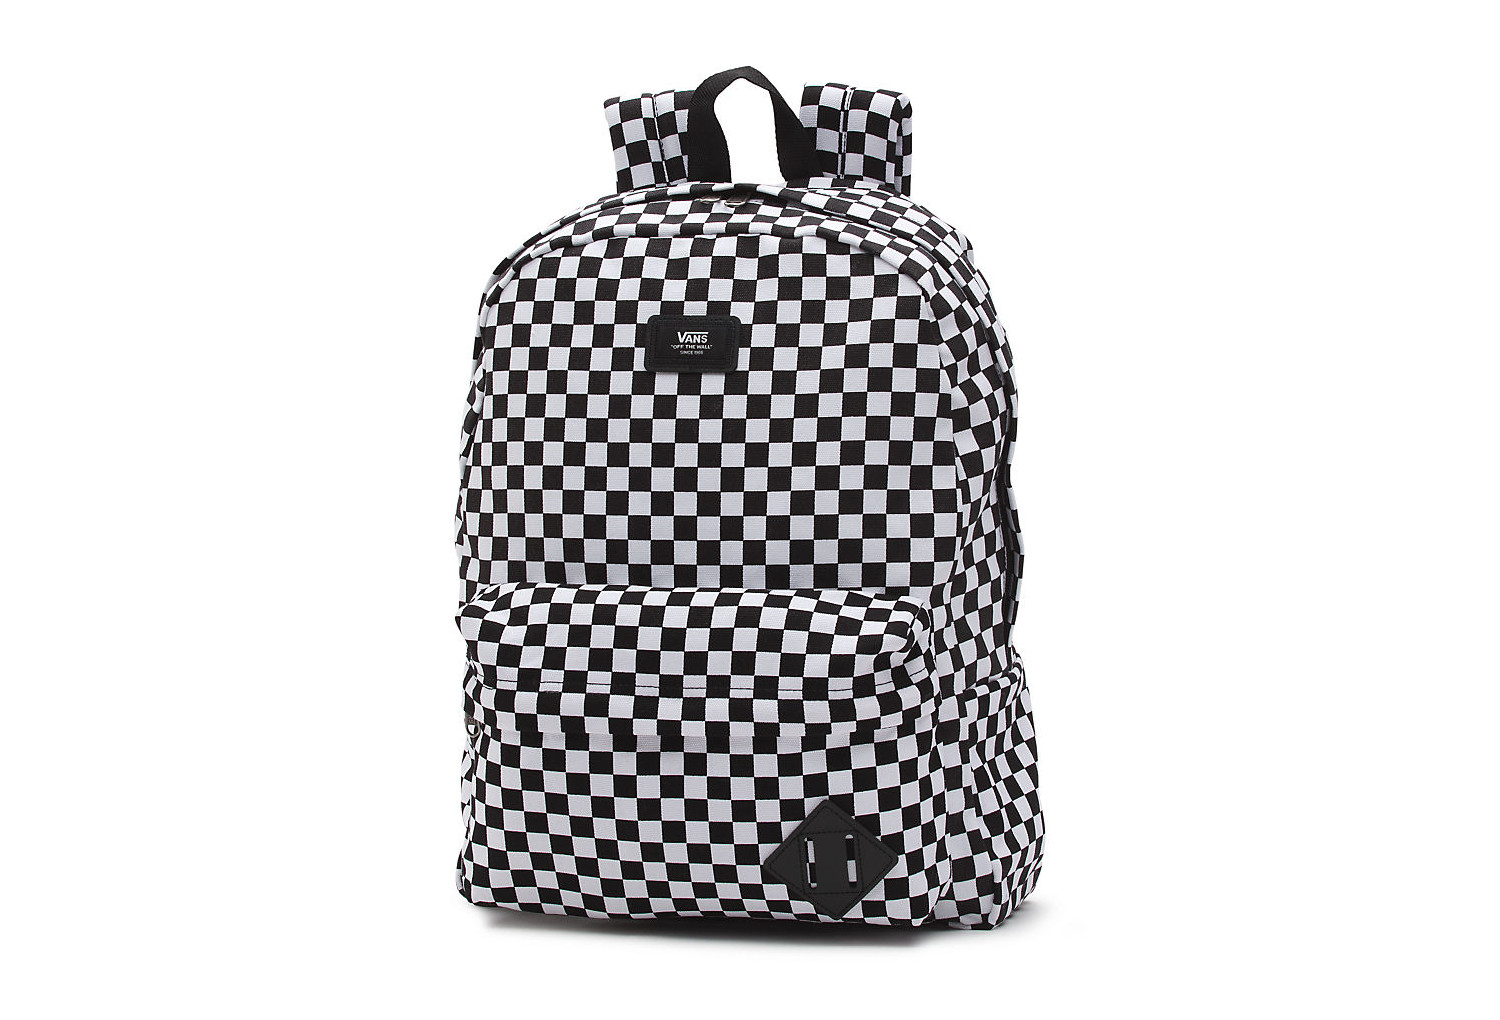 vans old skool backpack schwarz wei check. Black Bedroom Furniture Sets. Home Design Ideas